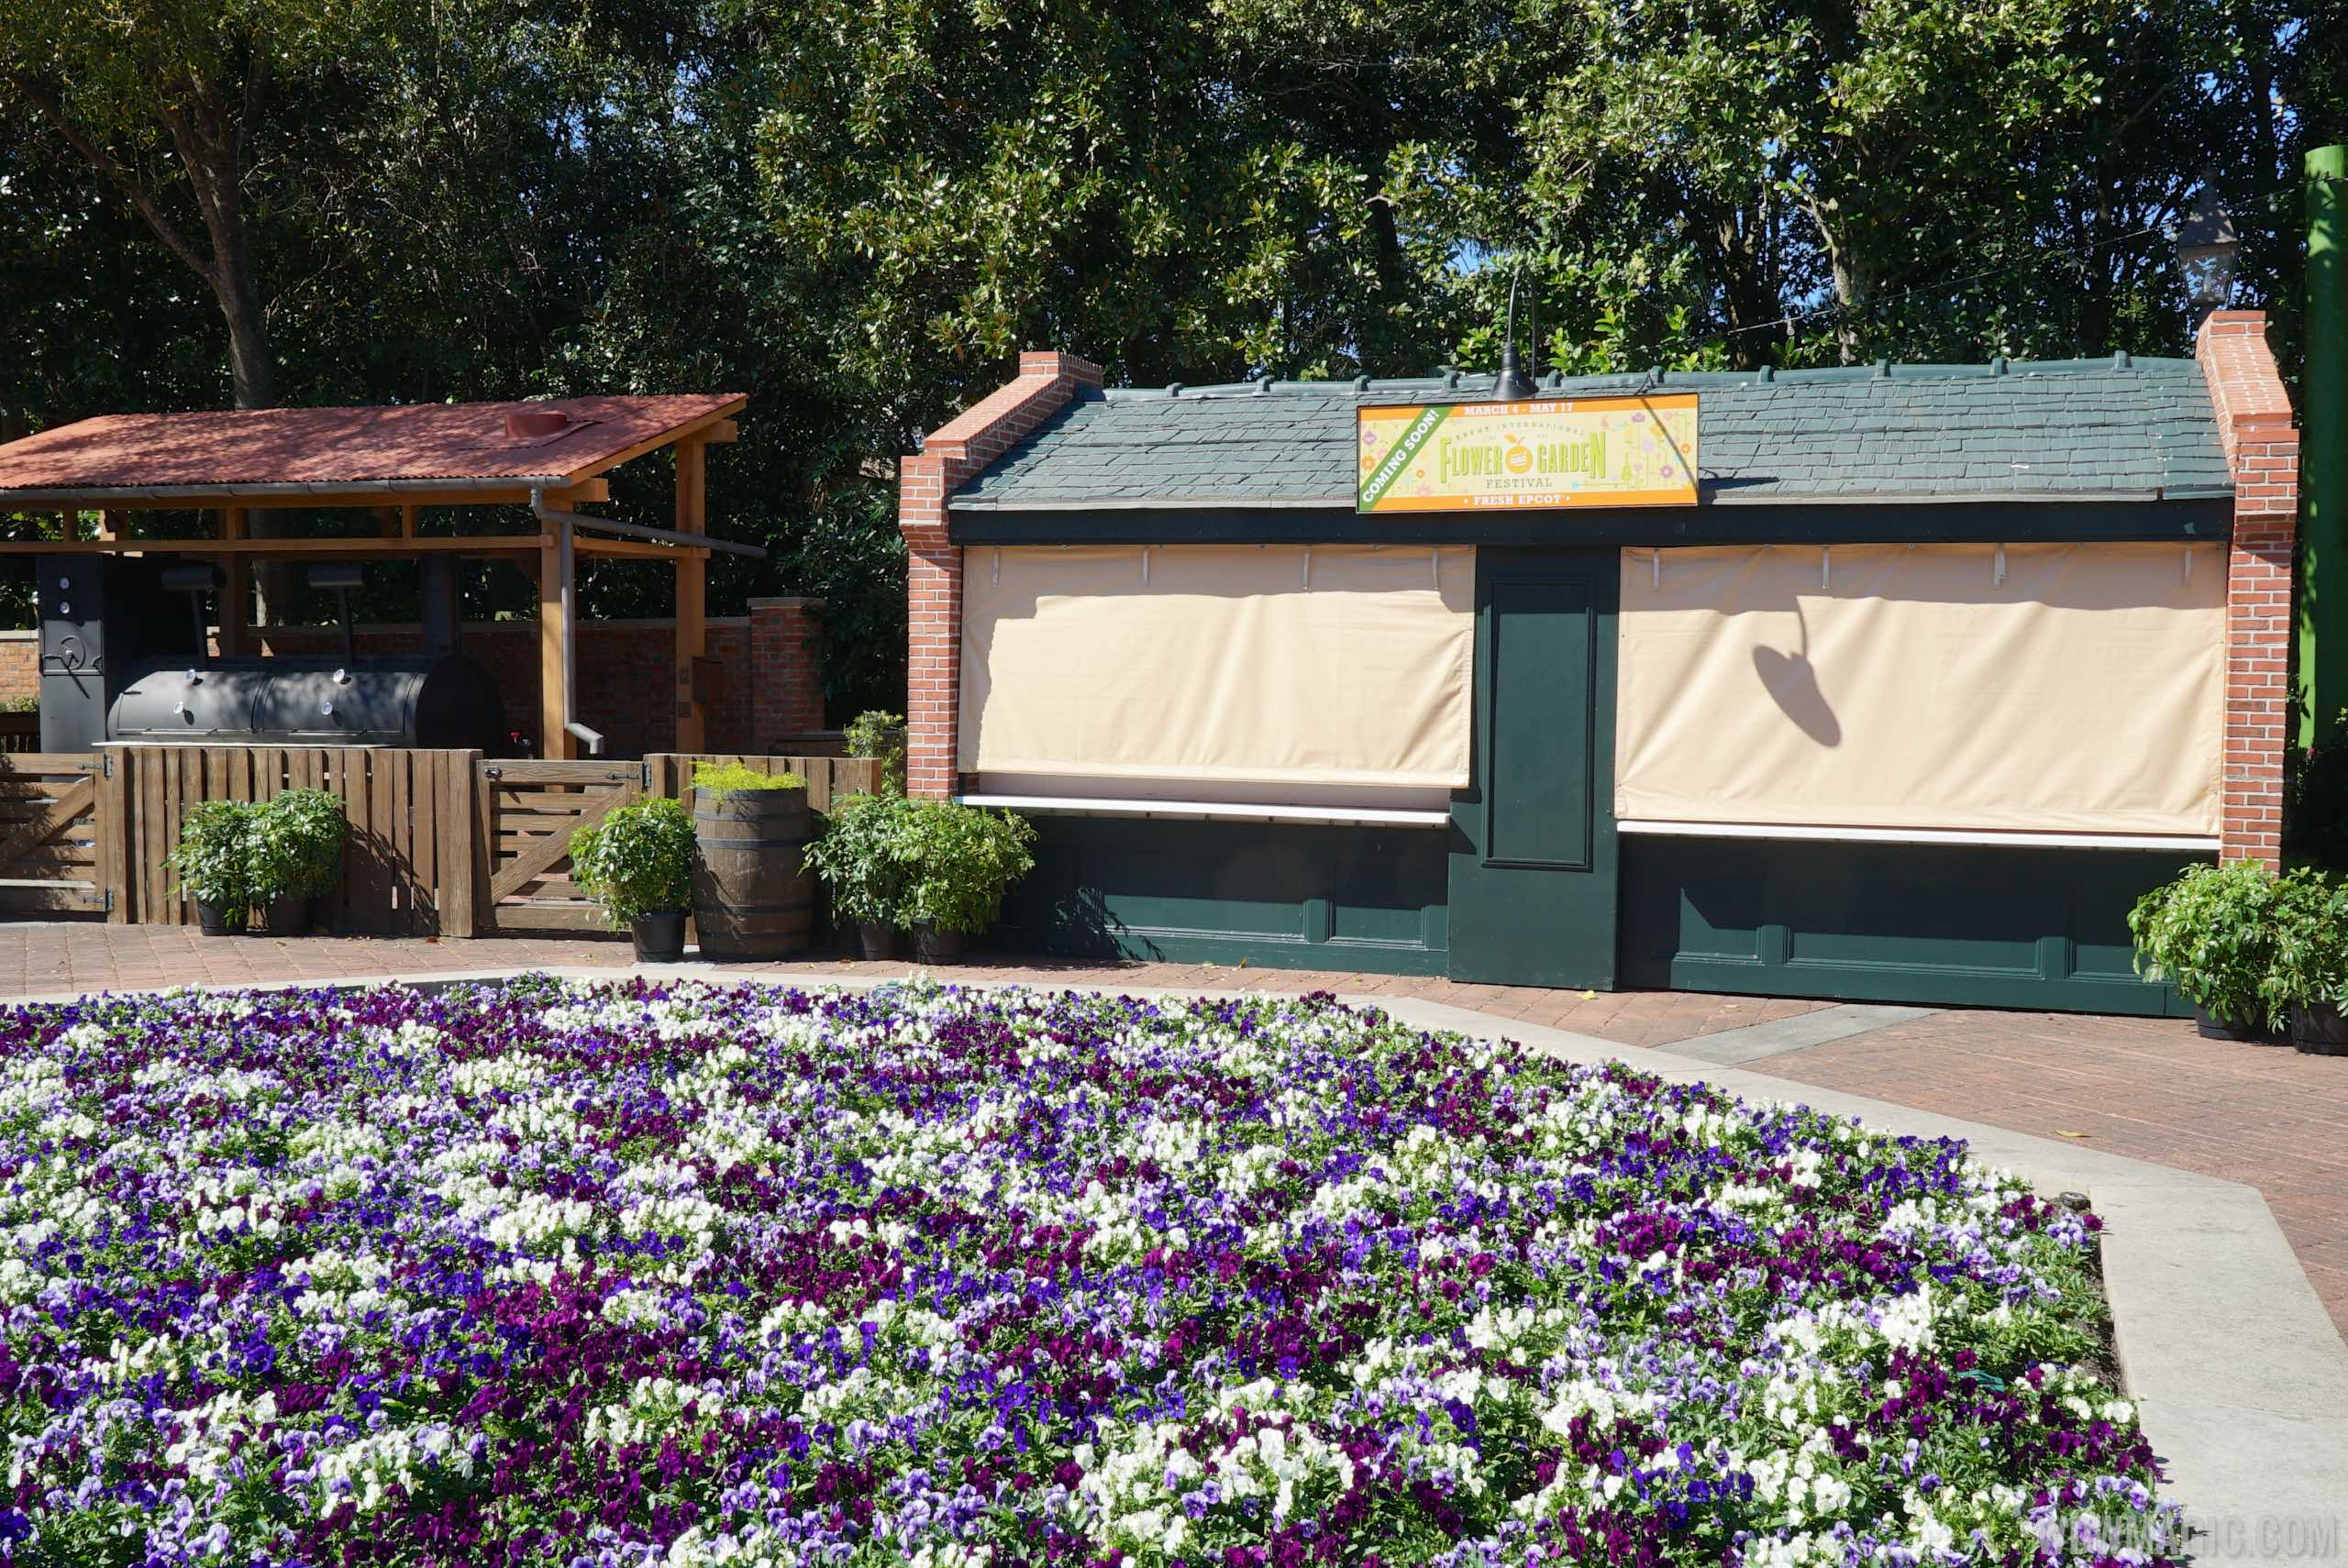 2015 Epcot Flower And Garden Festival Outdoor Kitchen And Topiary Installation Photo 15 Of 26